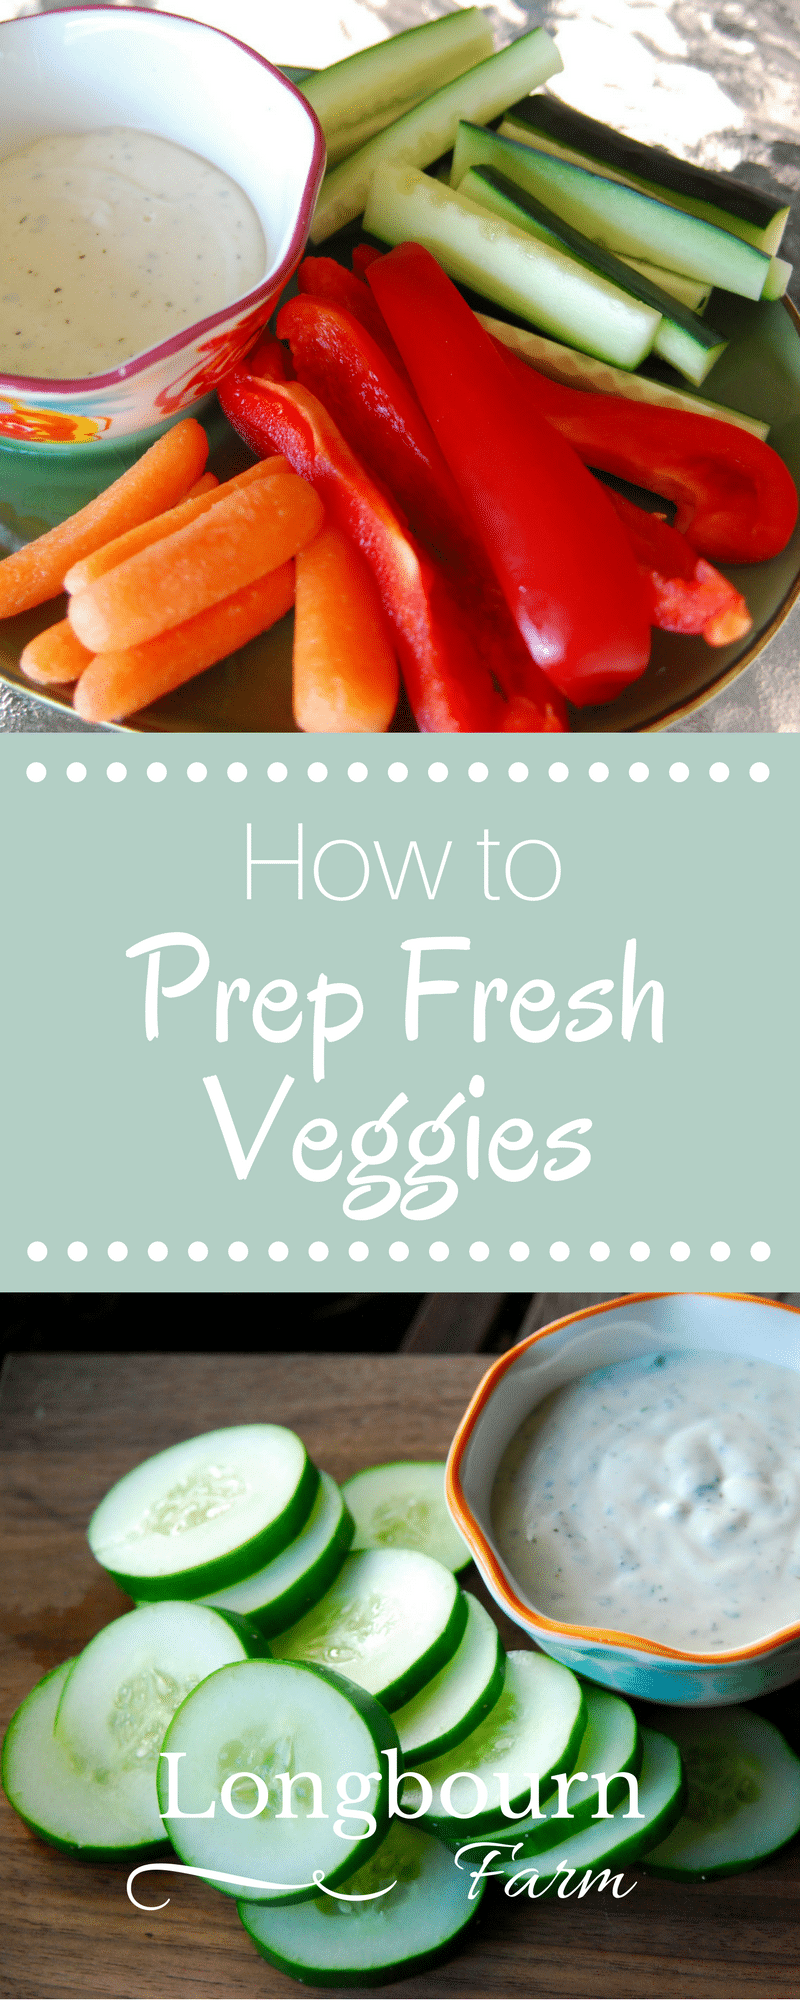 Follow these veggie tips to learn the easiest way to serve fresh veggies with any meal! Dress them up or down, they make a quick and easy healthy side dish.